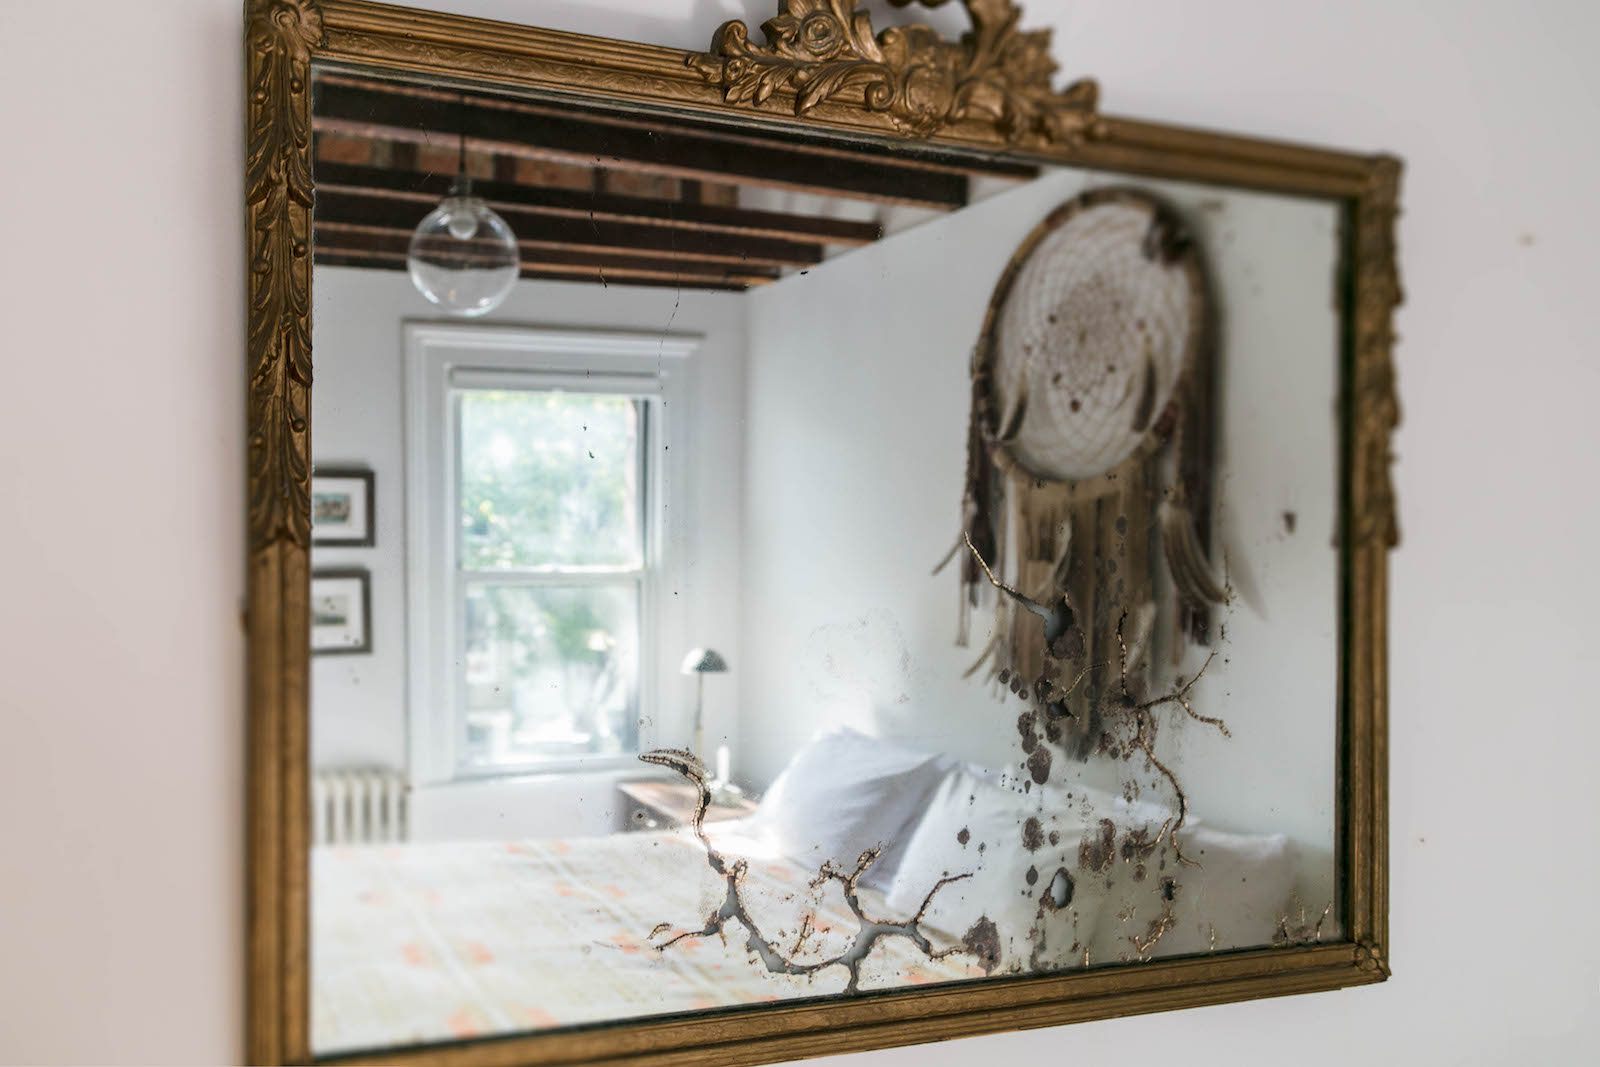 The Dream Catcher's king sized bed reflected in a framed mirror of this Urban Cowboy Brooklyn accommodation. A window looks out to trees.